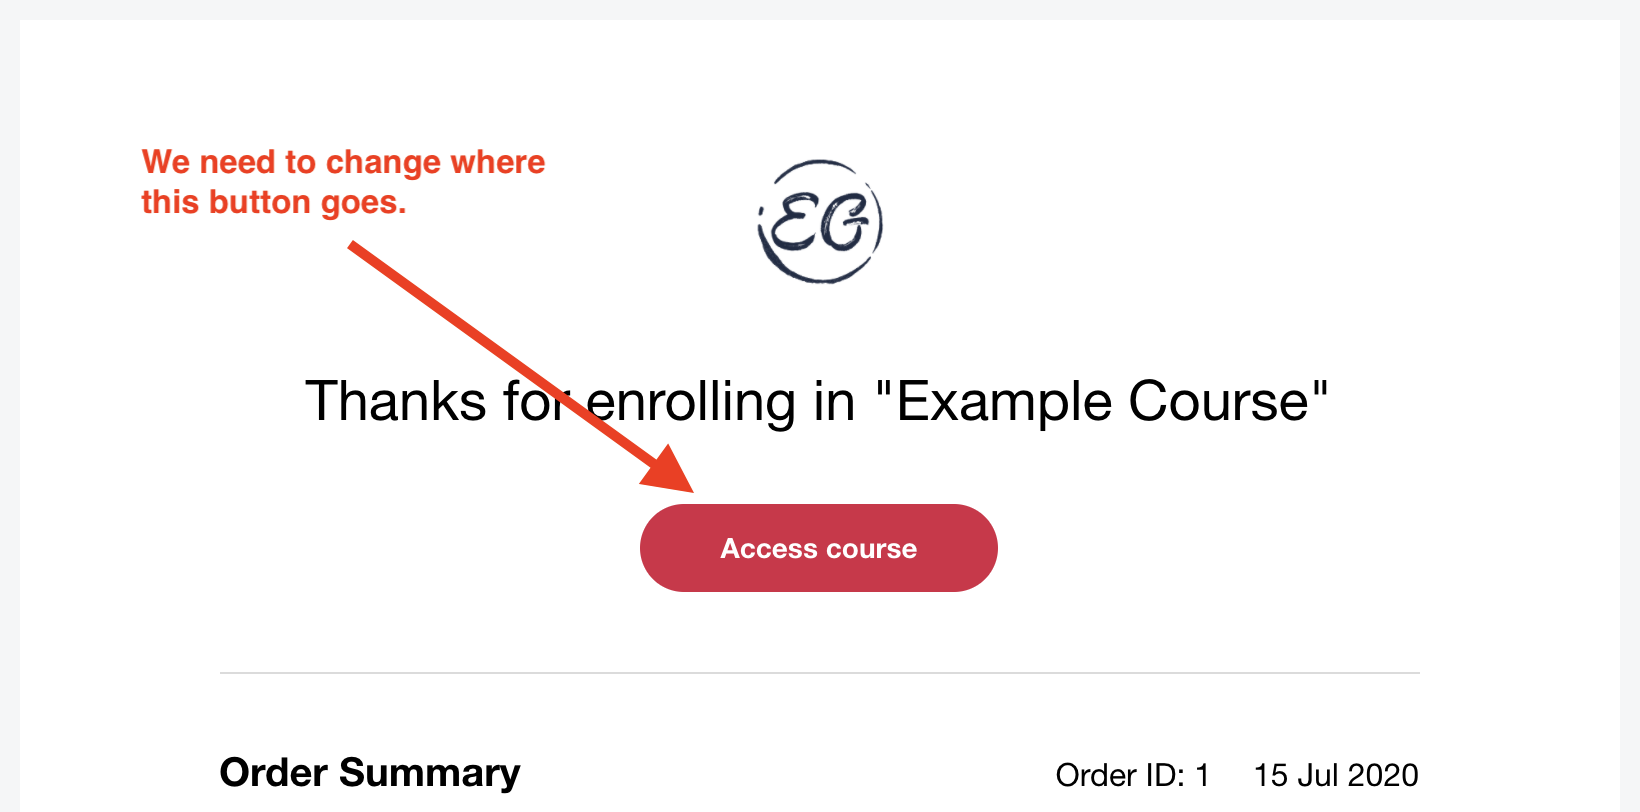 Updating Teachable's New Enrollment confirmation email